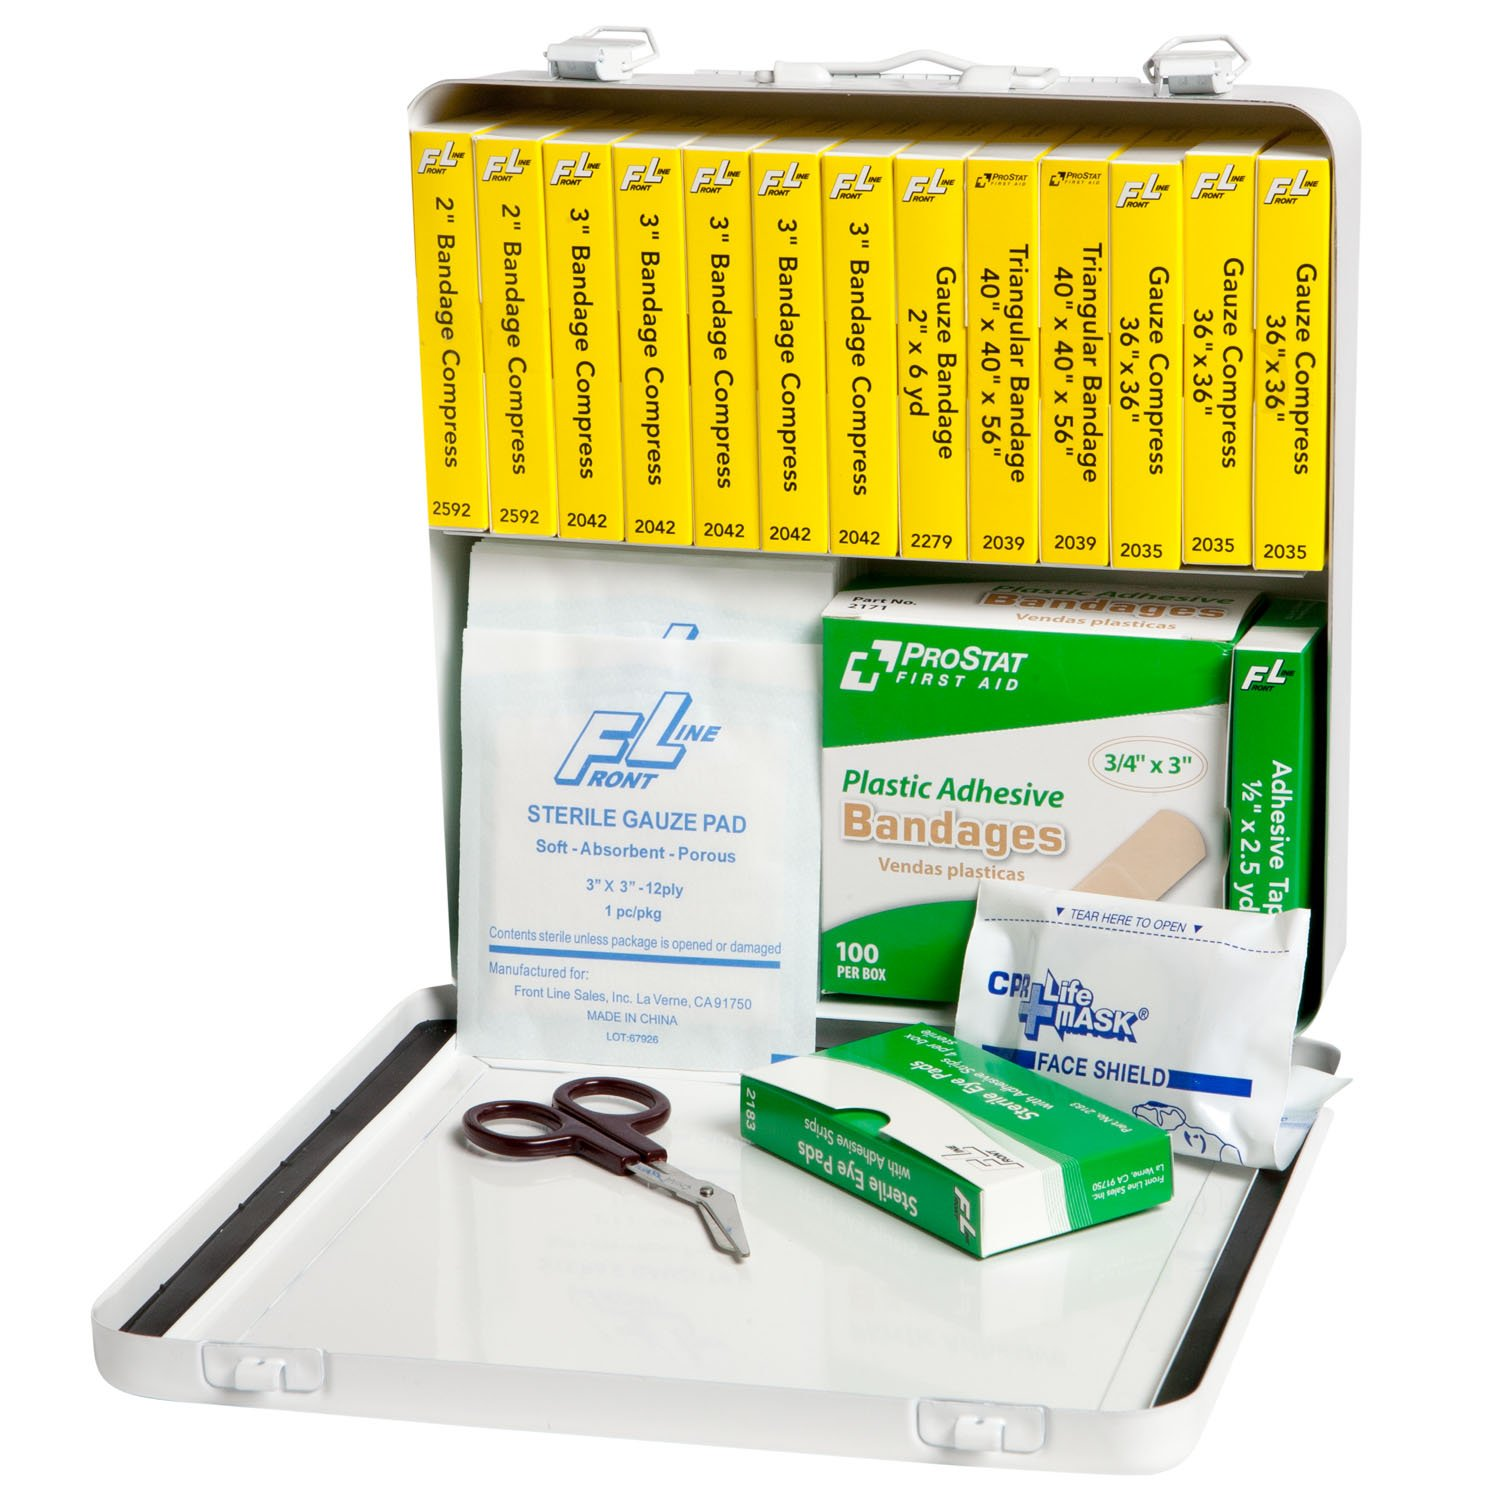 ProStat First Aid 0603 158 Piece 24 Unit School Bus First Aid Kit with Steel Case